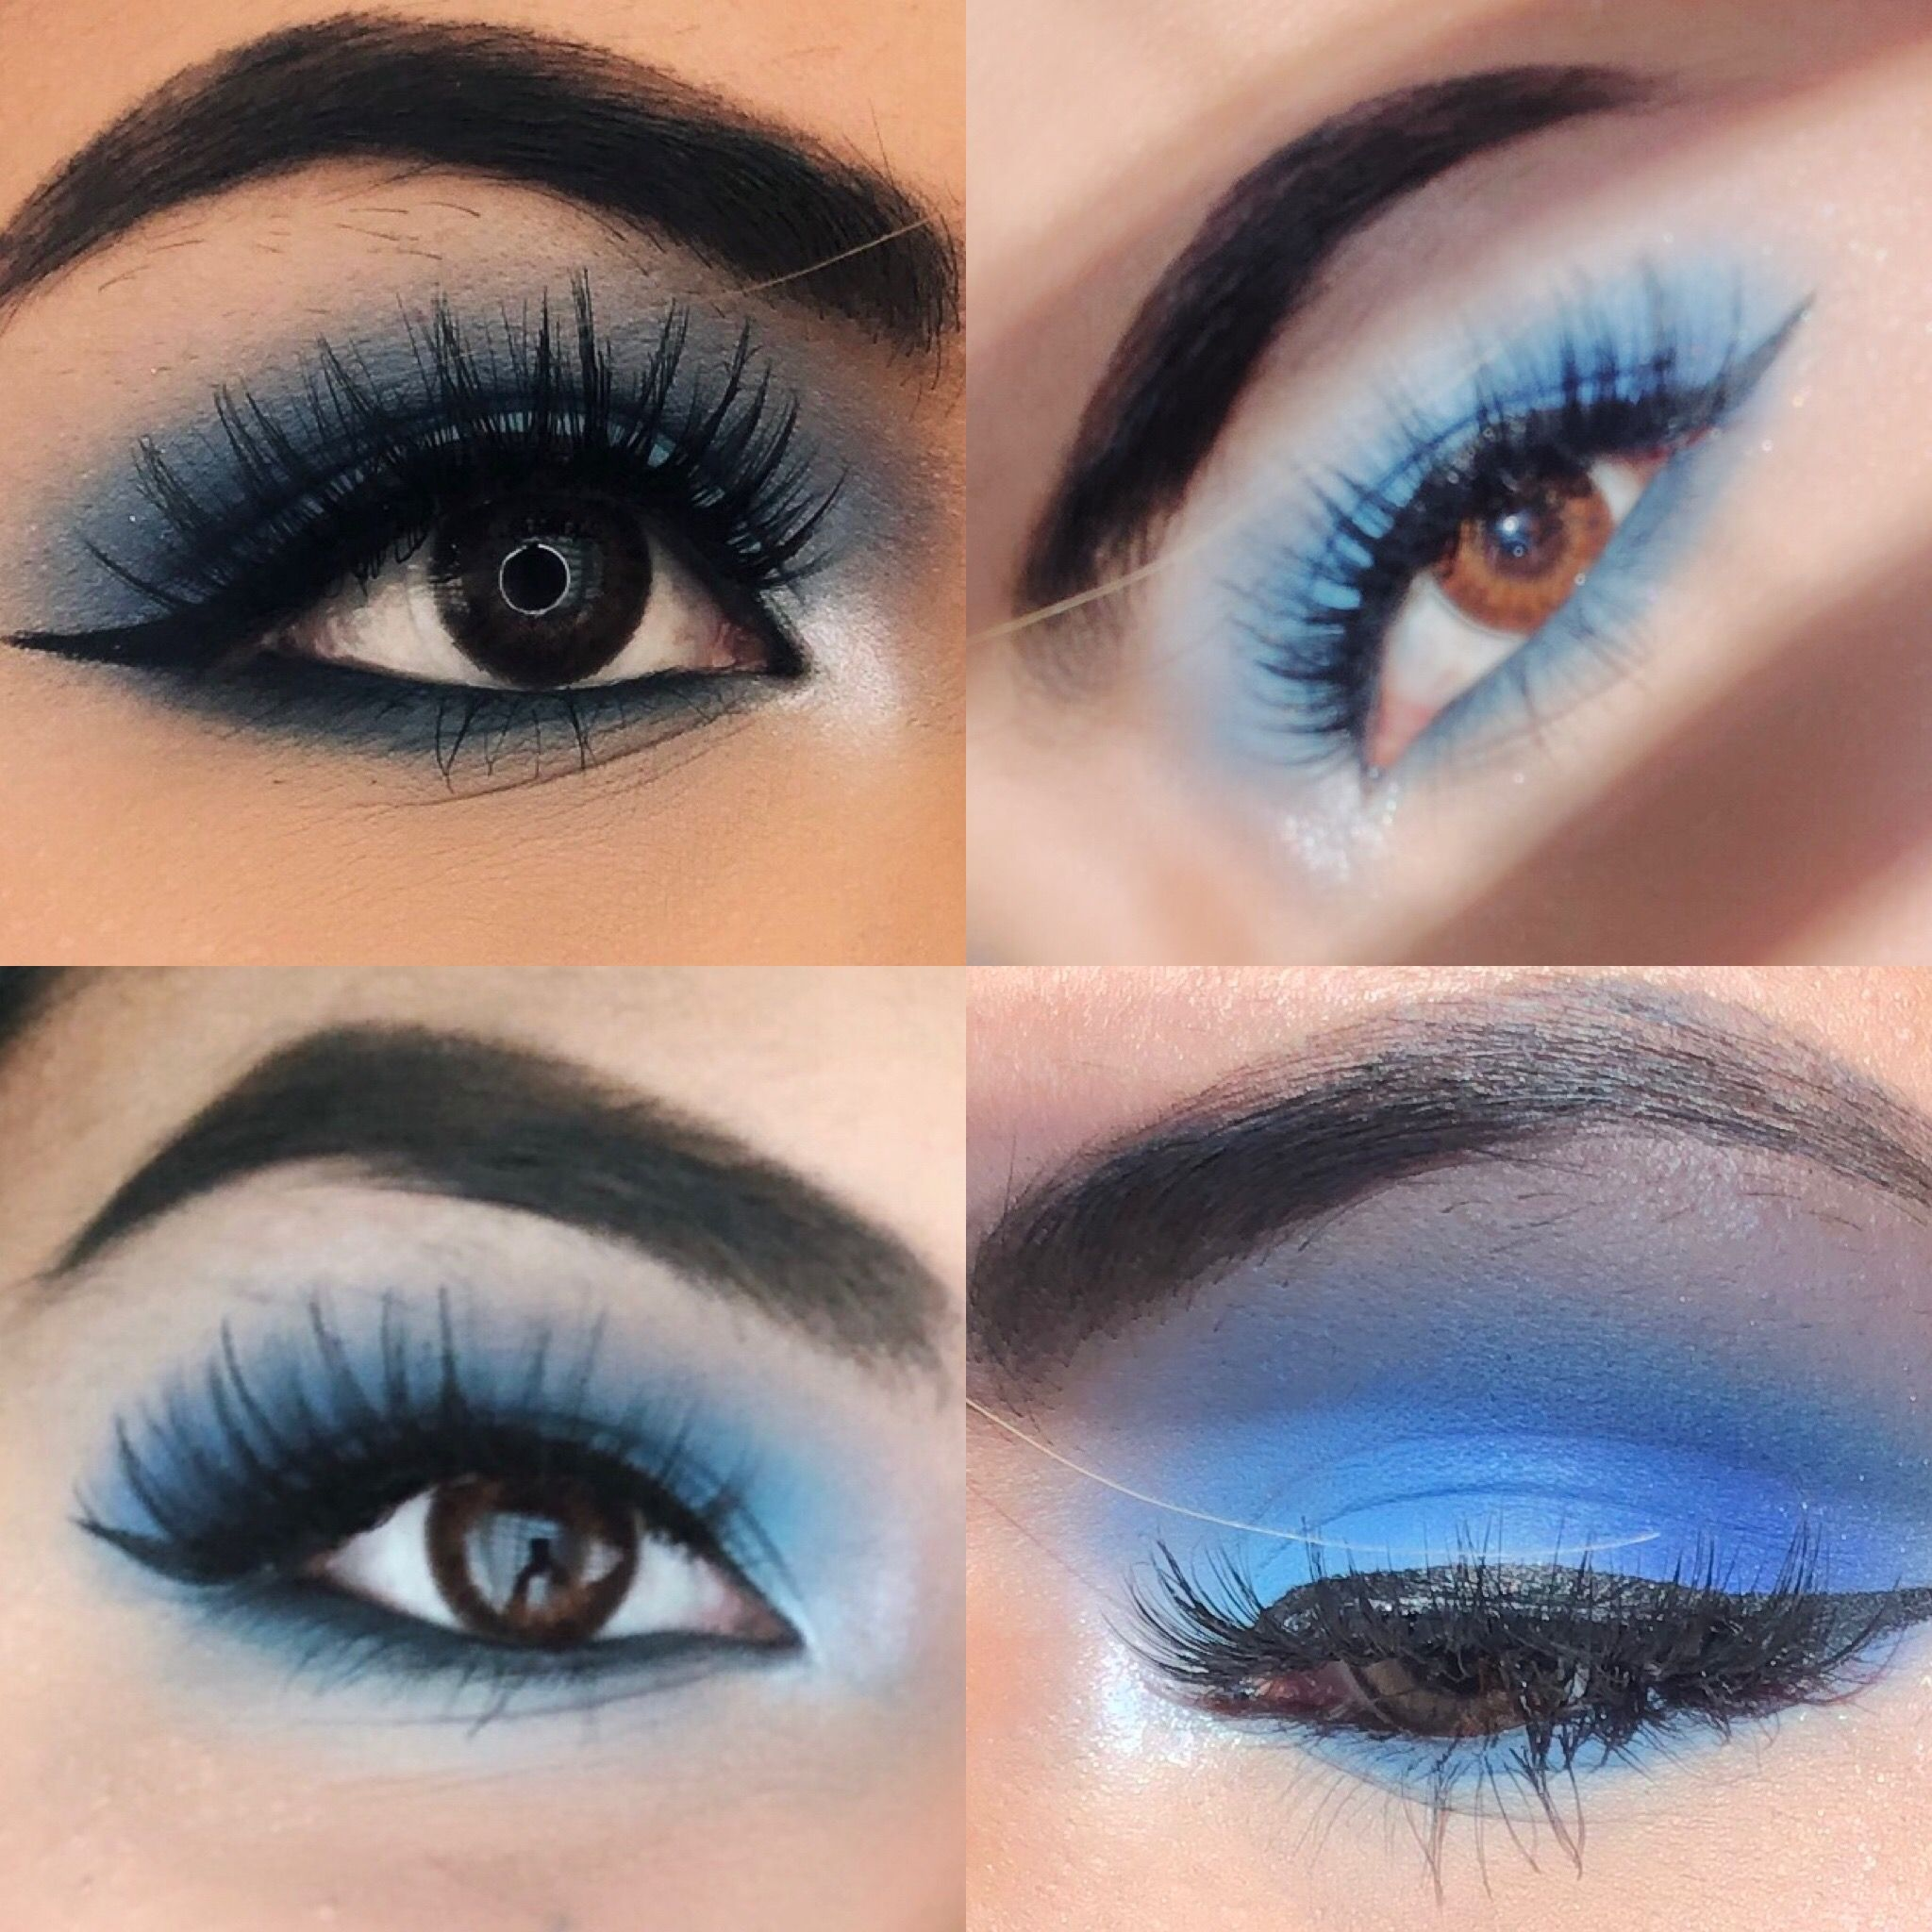 I created this eyeshadow look using the Jeffree Star